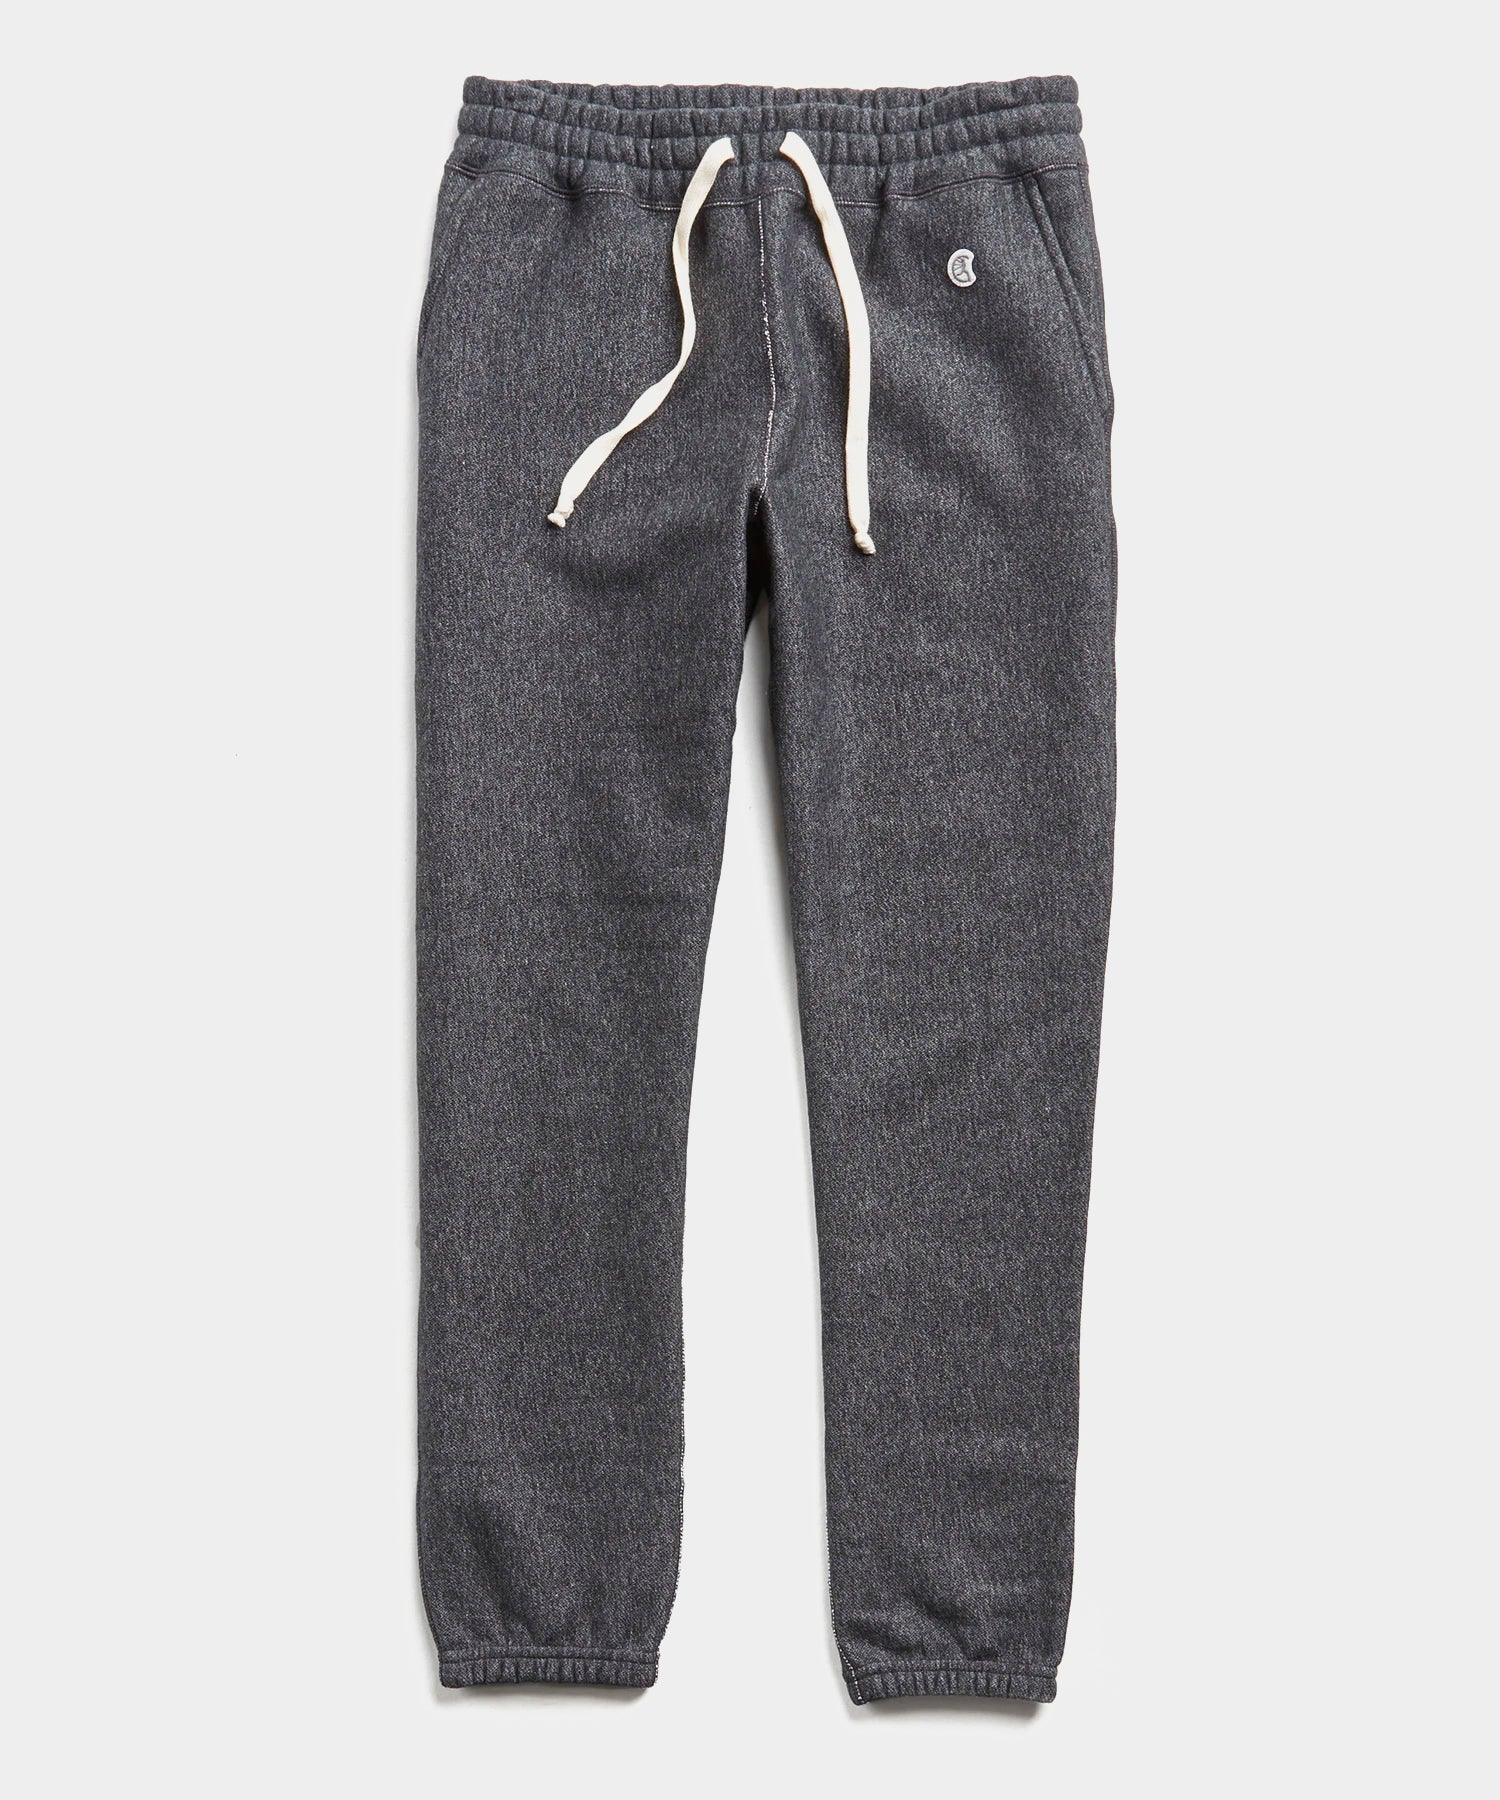 Heavyweight Classic Sweatpant in Black Mix